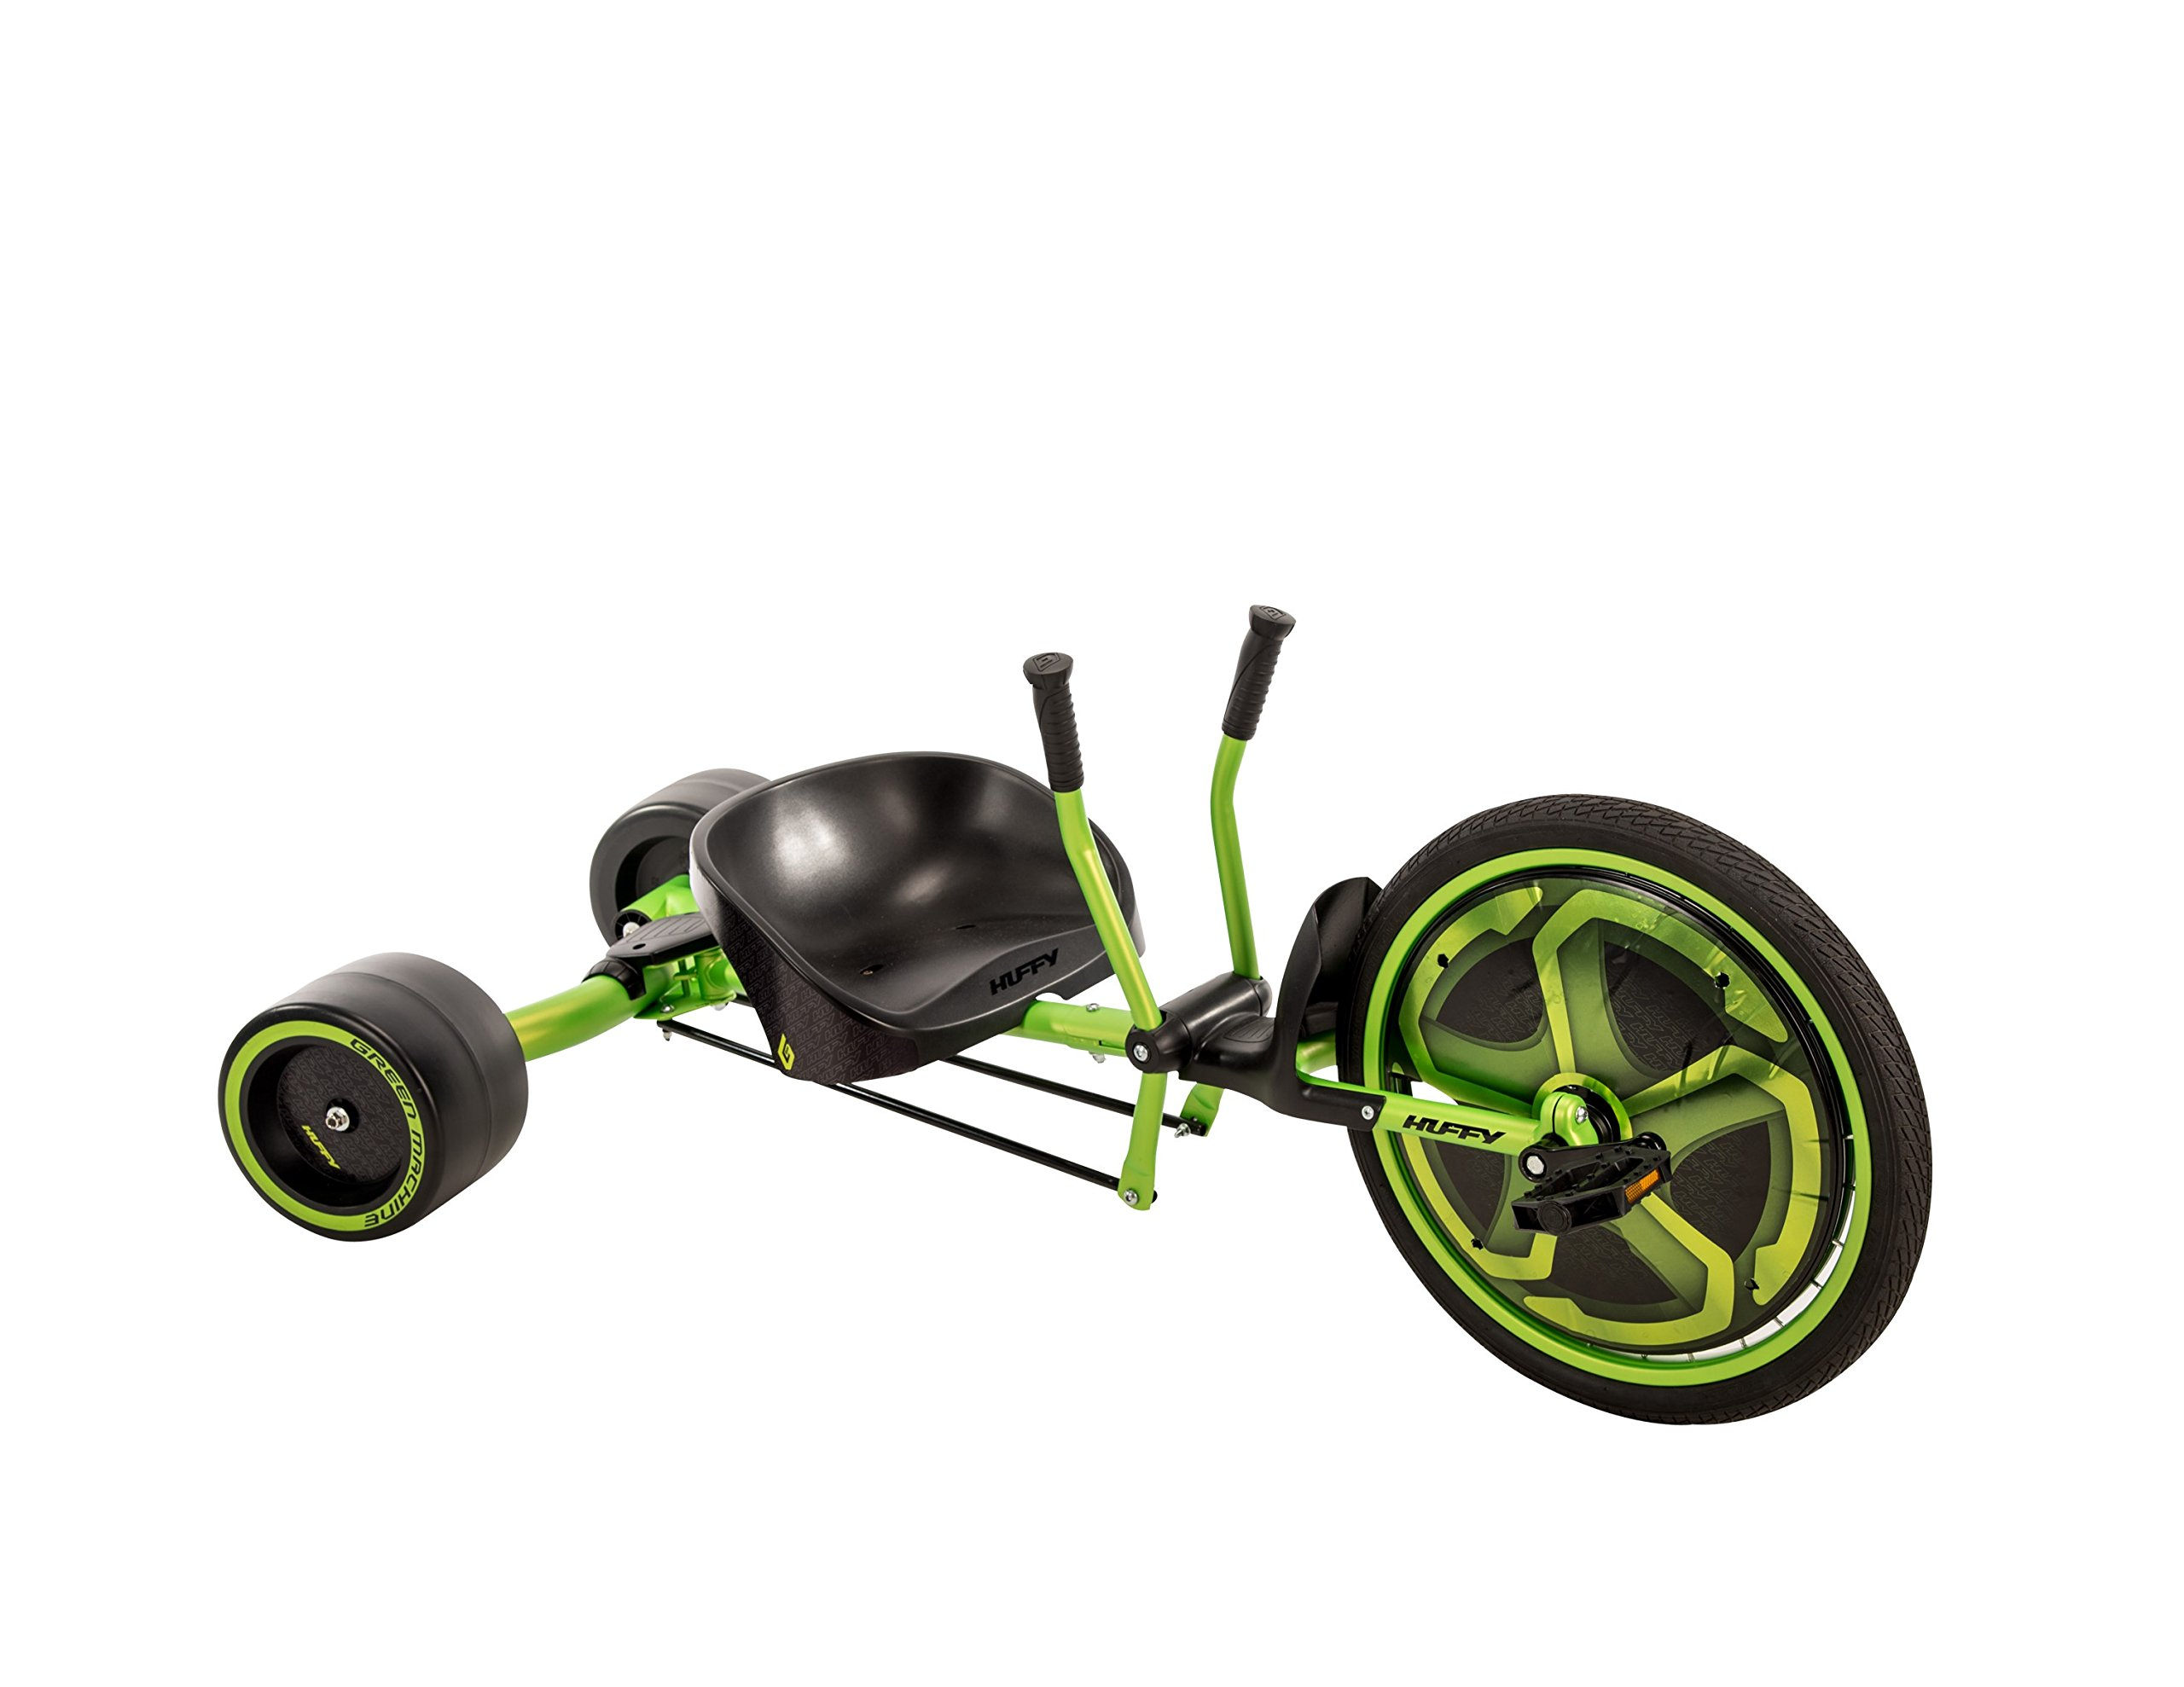 Huffy Green Machine 20-inch Trike, 2018 Version, Ages 8 and Older, with 180-Degree Spins and Awesome Drifts